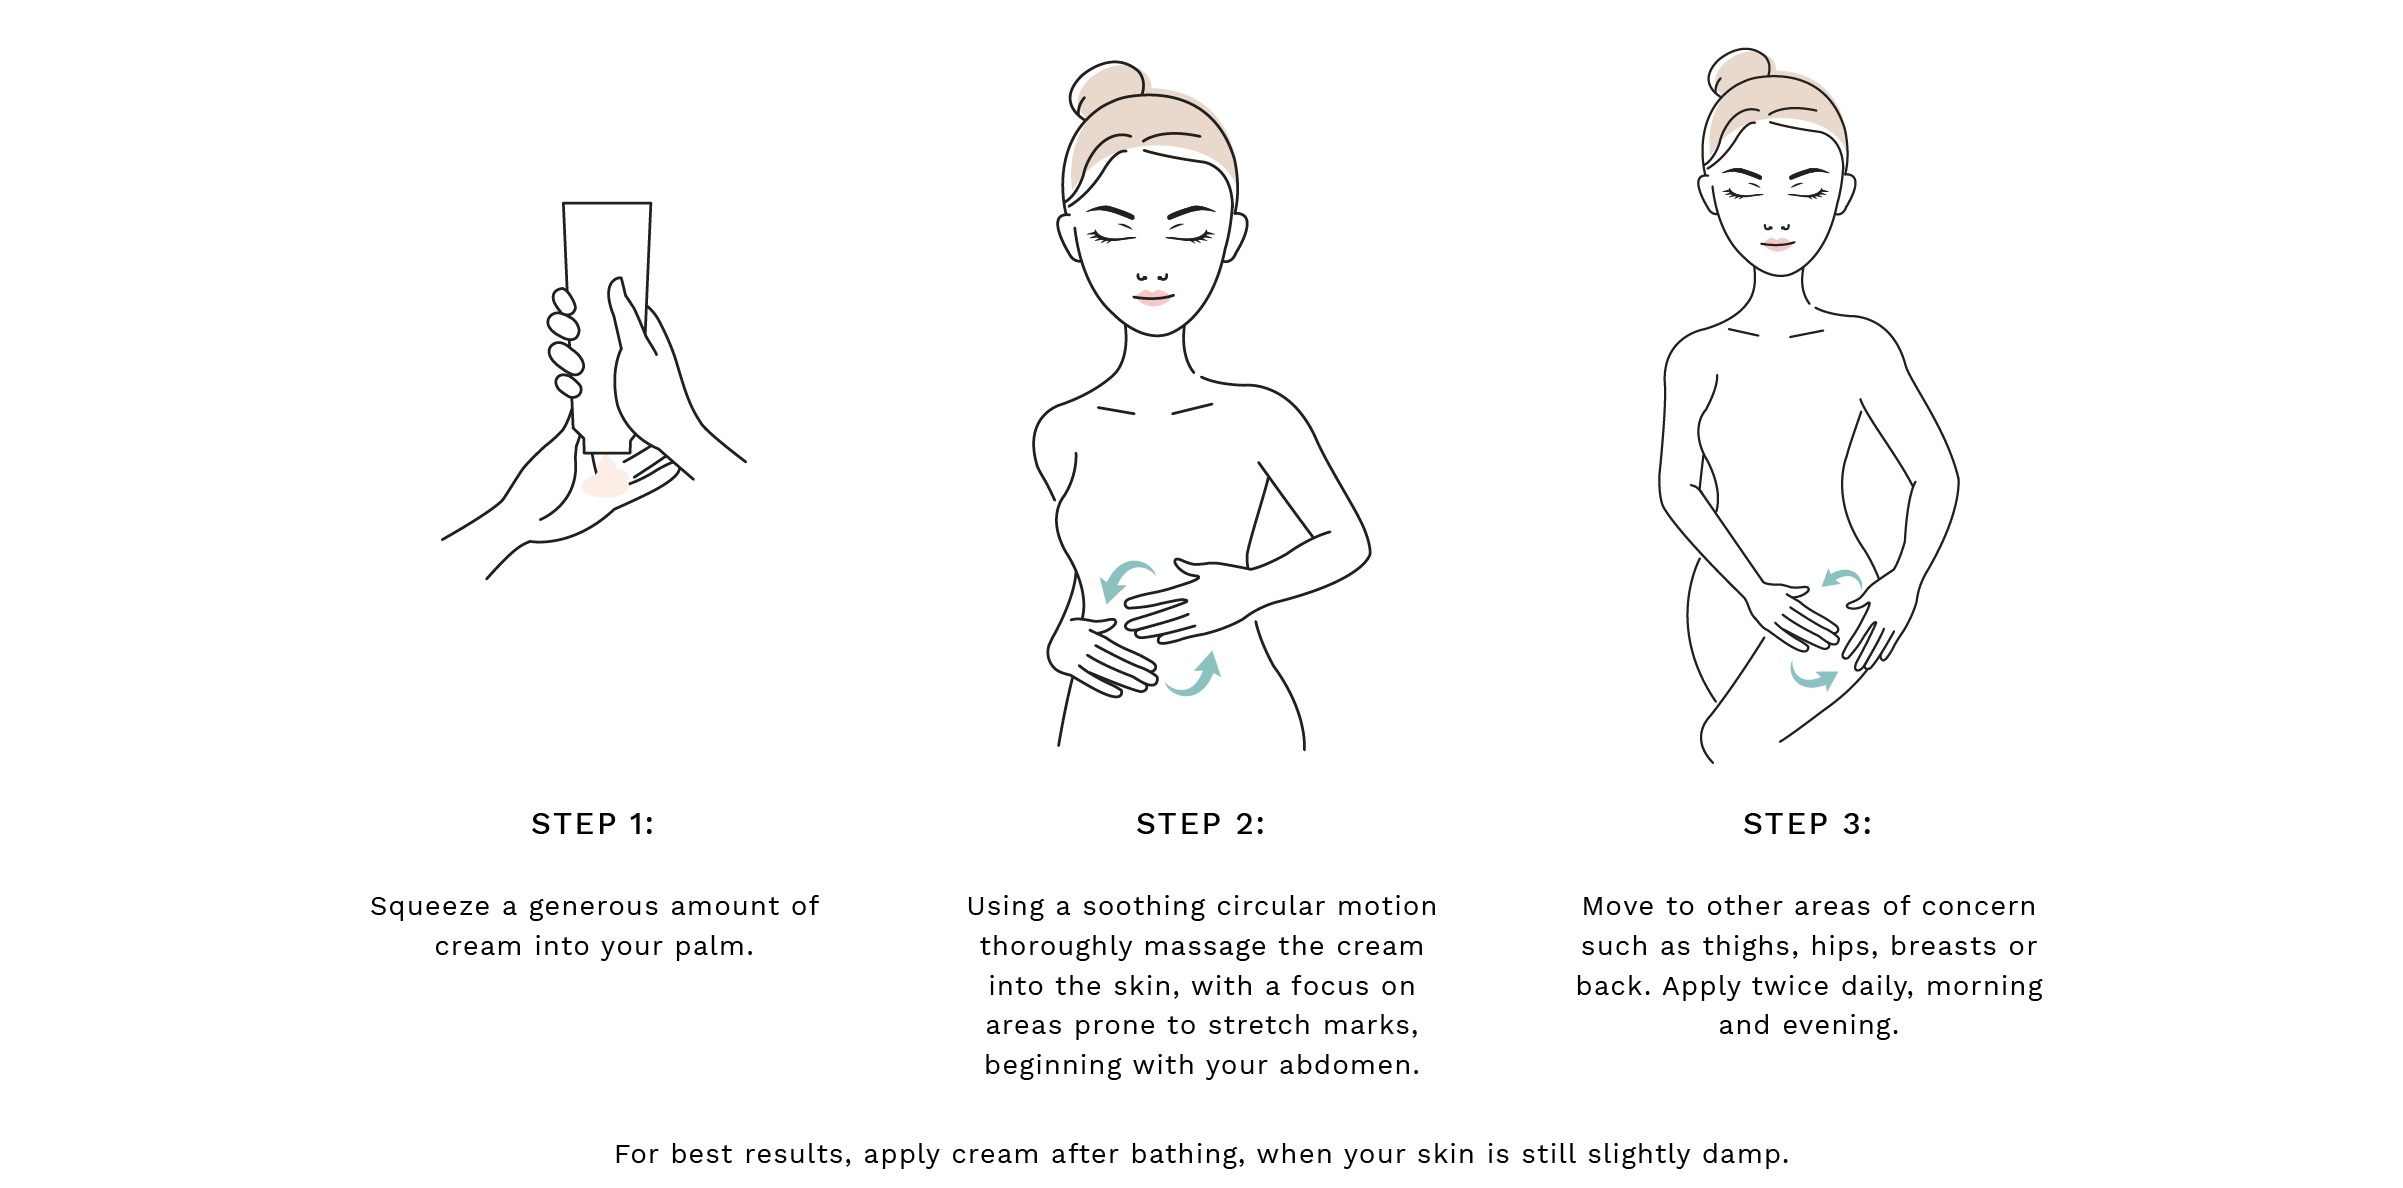 Step 1: Squeeze a generous amount of the polish into your palm. Step 2: Using a soothing circular motion thoroughly massage the cream into the skin, with a focus on areas prone to stretch marks, beginning with your abdomen. Step 3:Move to other areas of concern such as thighs, hips, breasts or back. Apply twice daily, morning and evening. For best results, use 1-3 times per week.   For best results, apply cream after bathing, when your skin is still slightly damp.